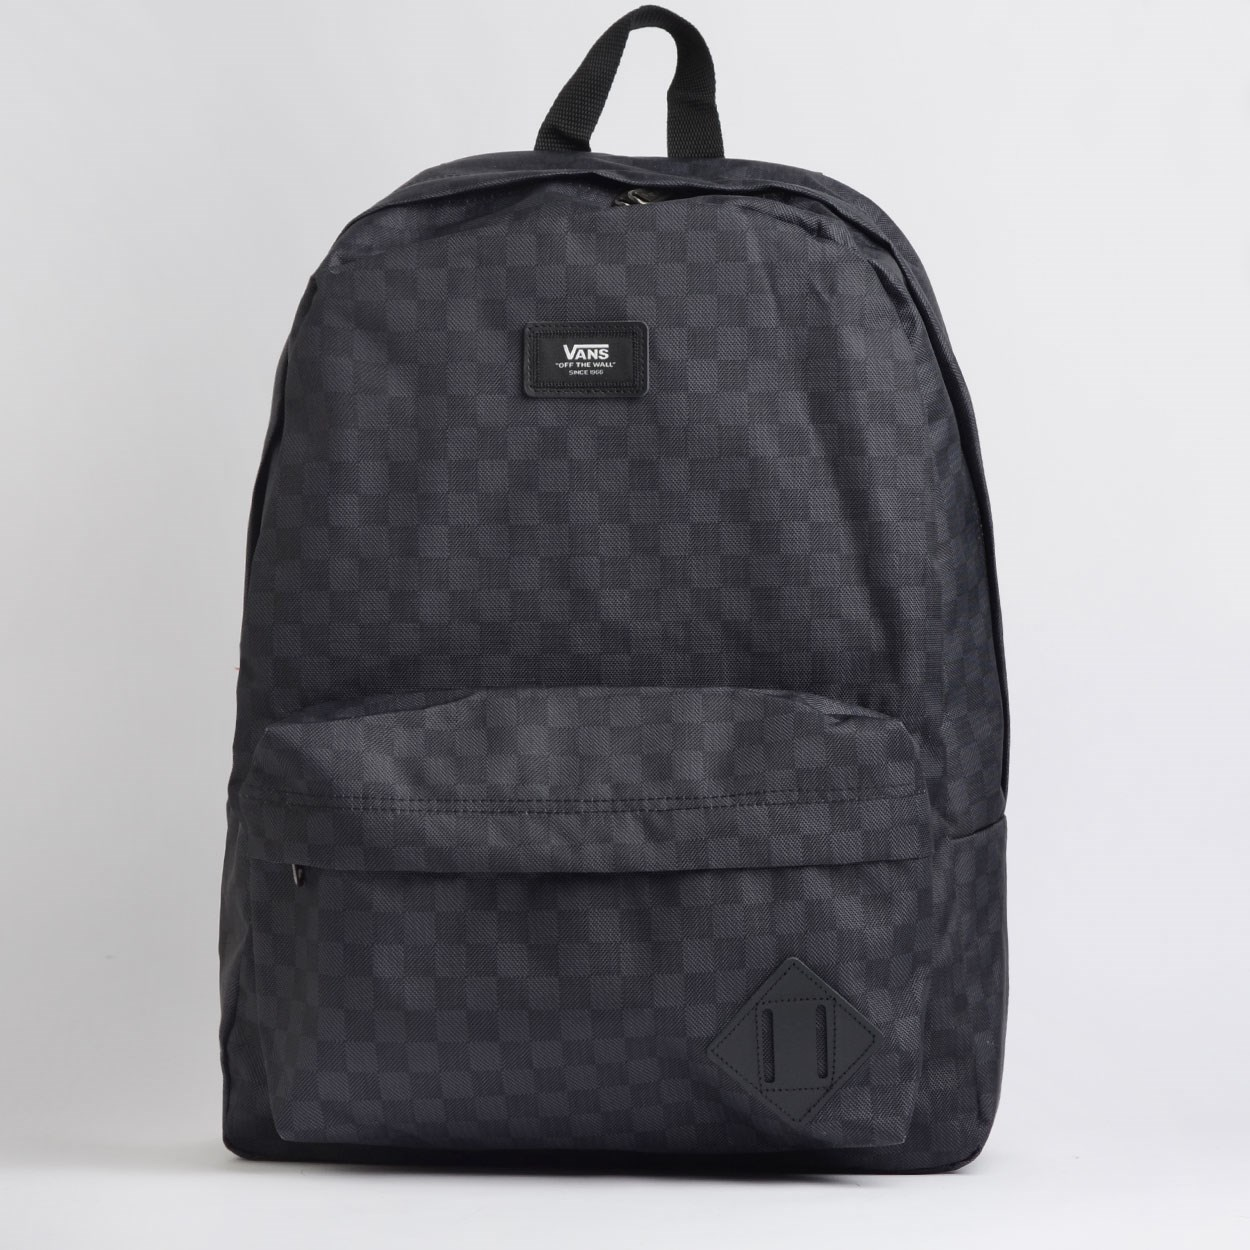 Vans Old Skool II Backpack BlackCharcoal (Checkered